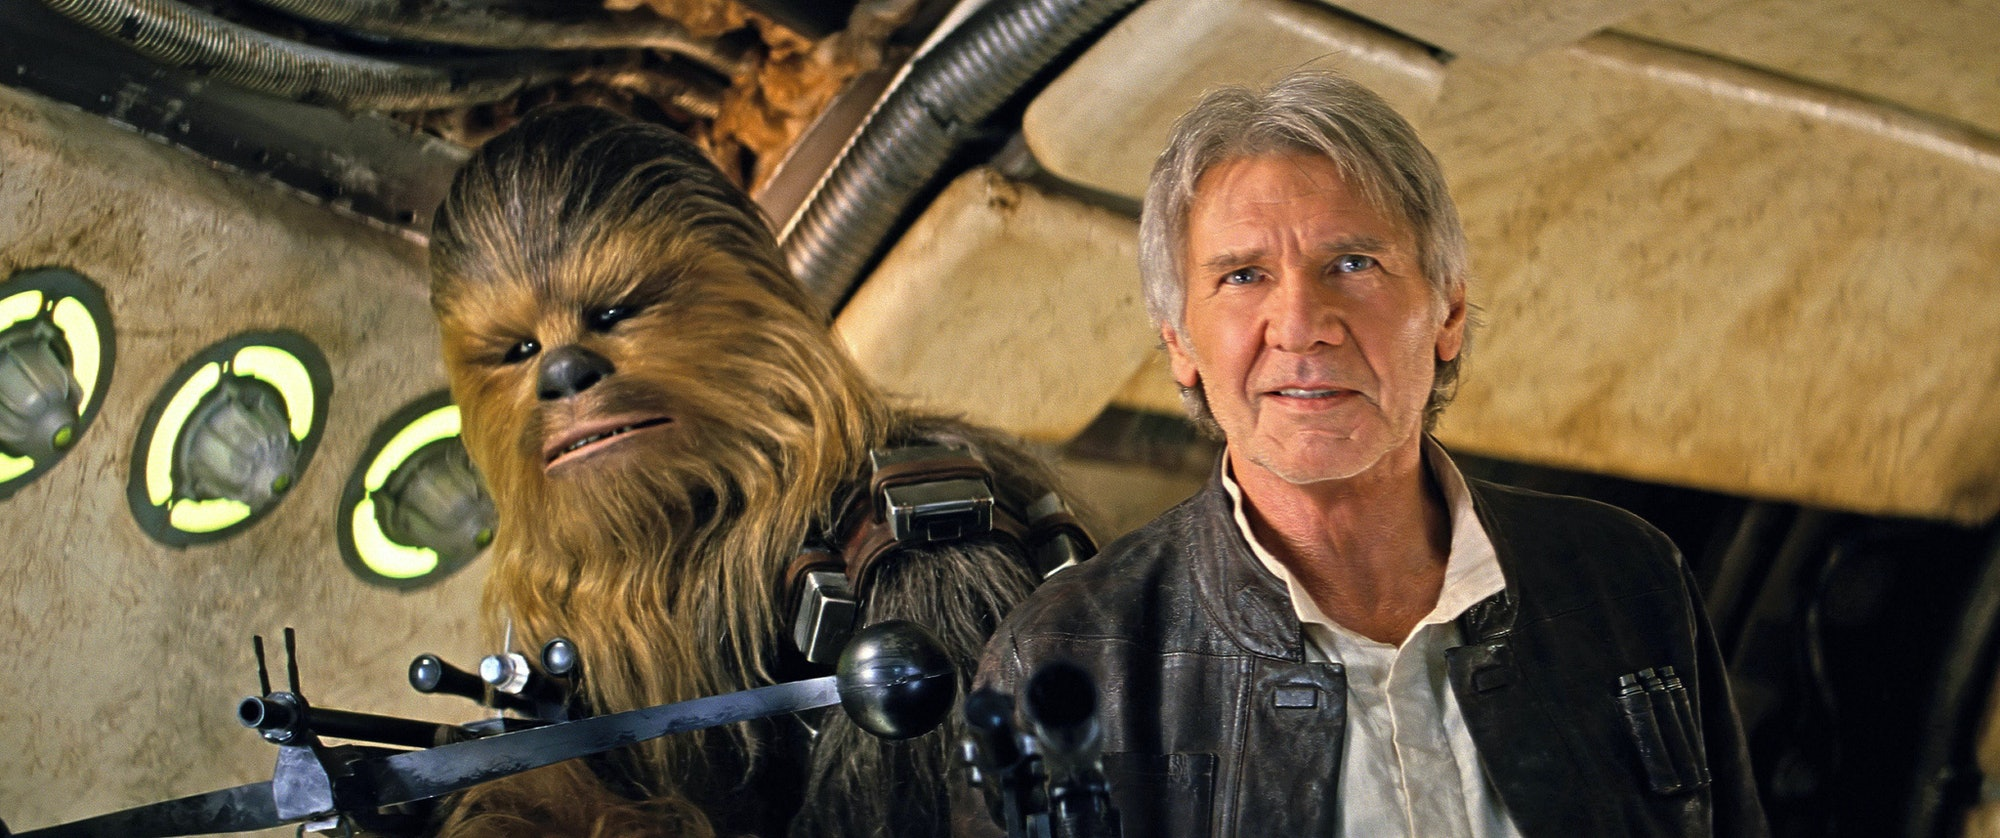 Han Solo and Chewbacca in 'The Force Awakens'.